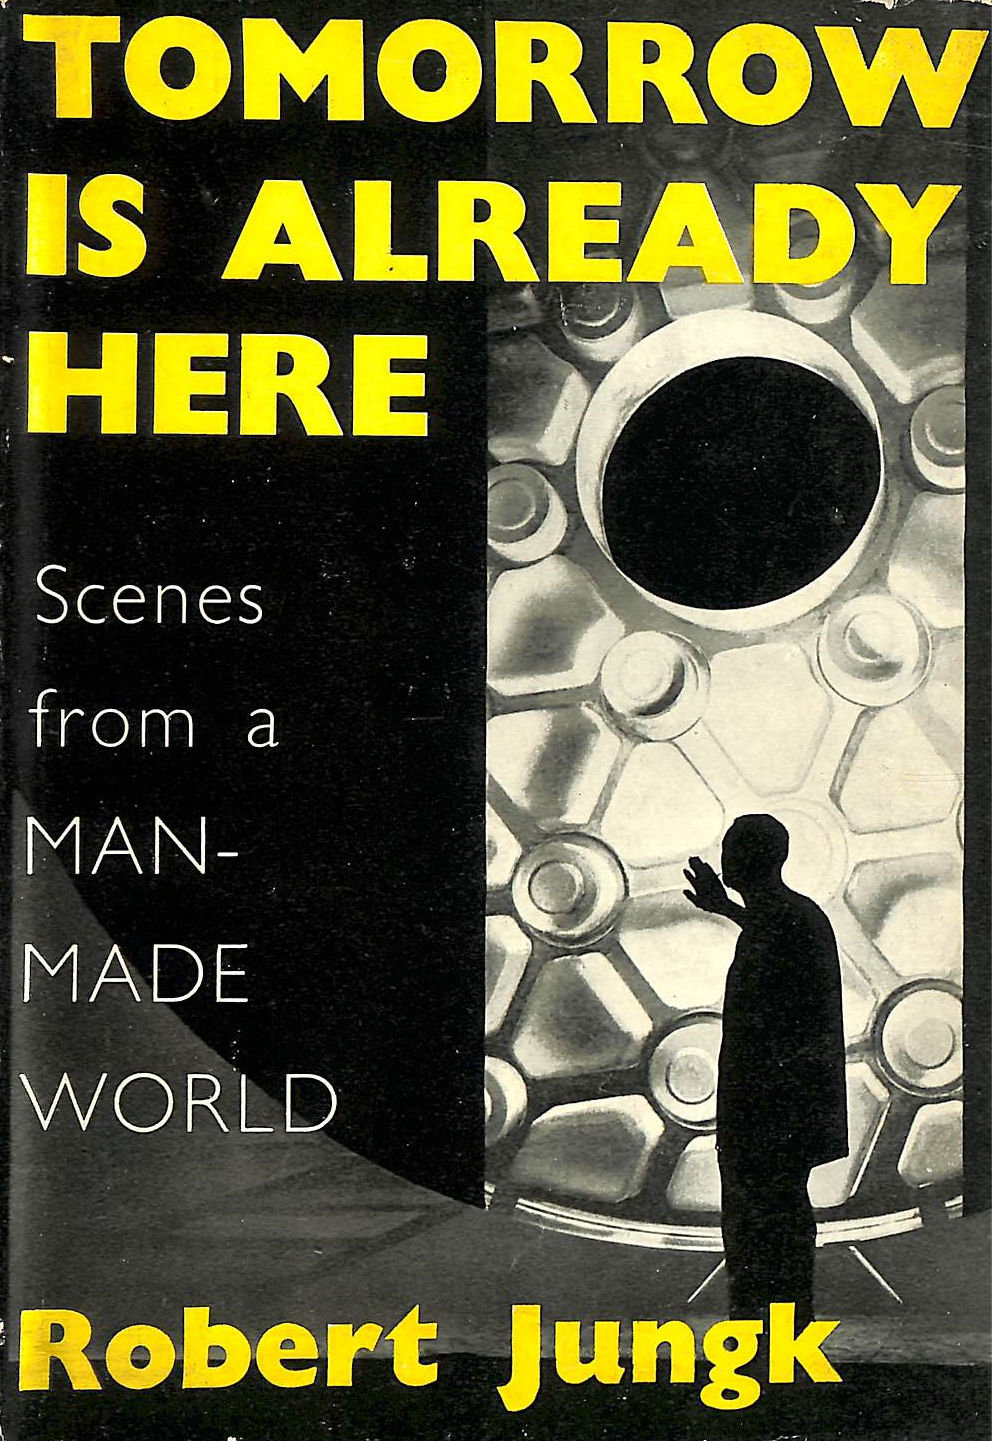 Image for Tomorrow is already here: Scenes from a man-made world